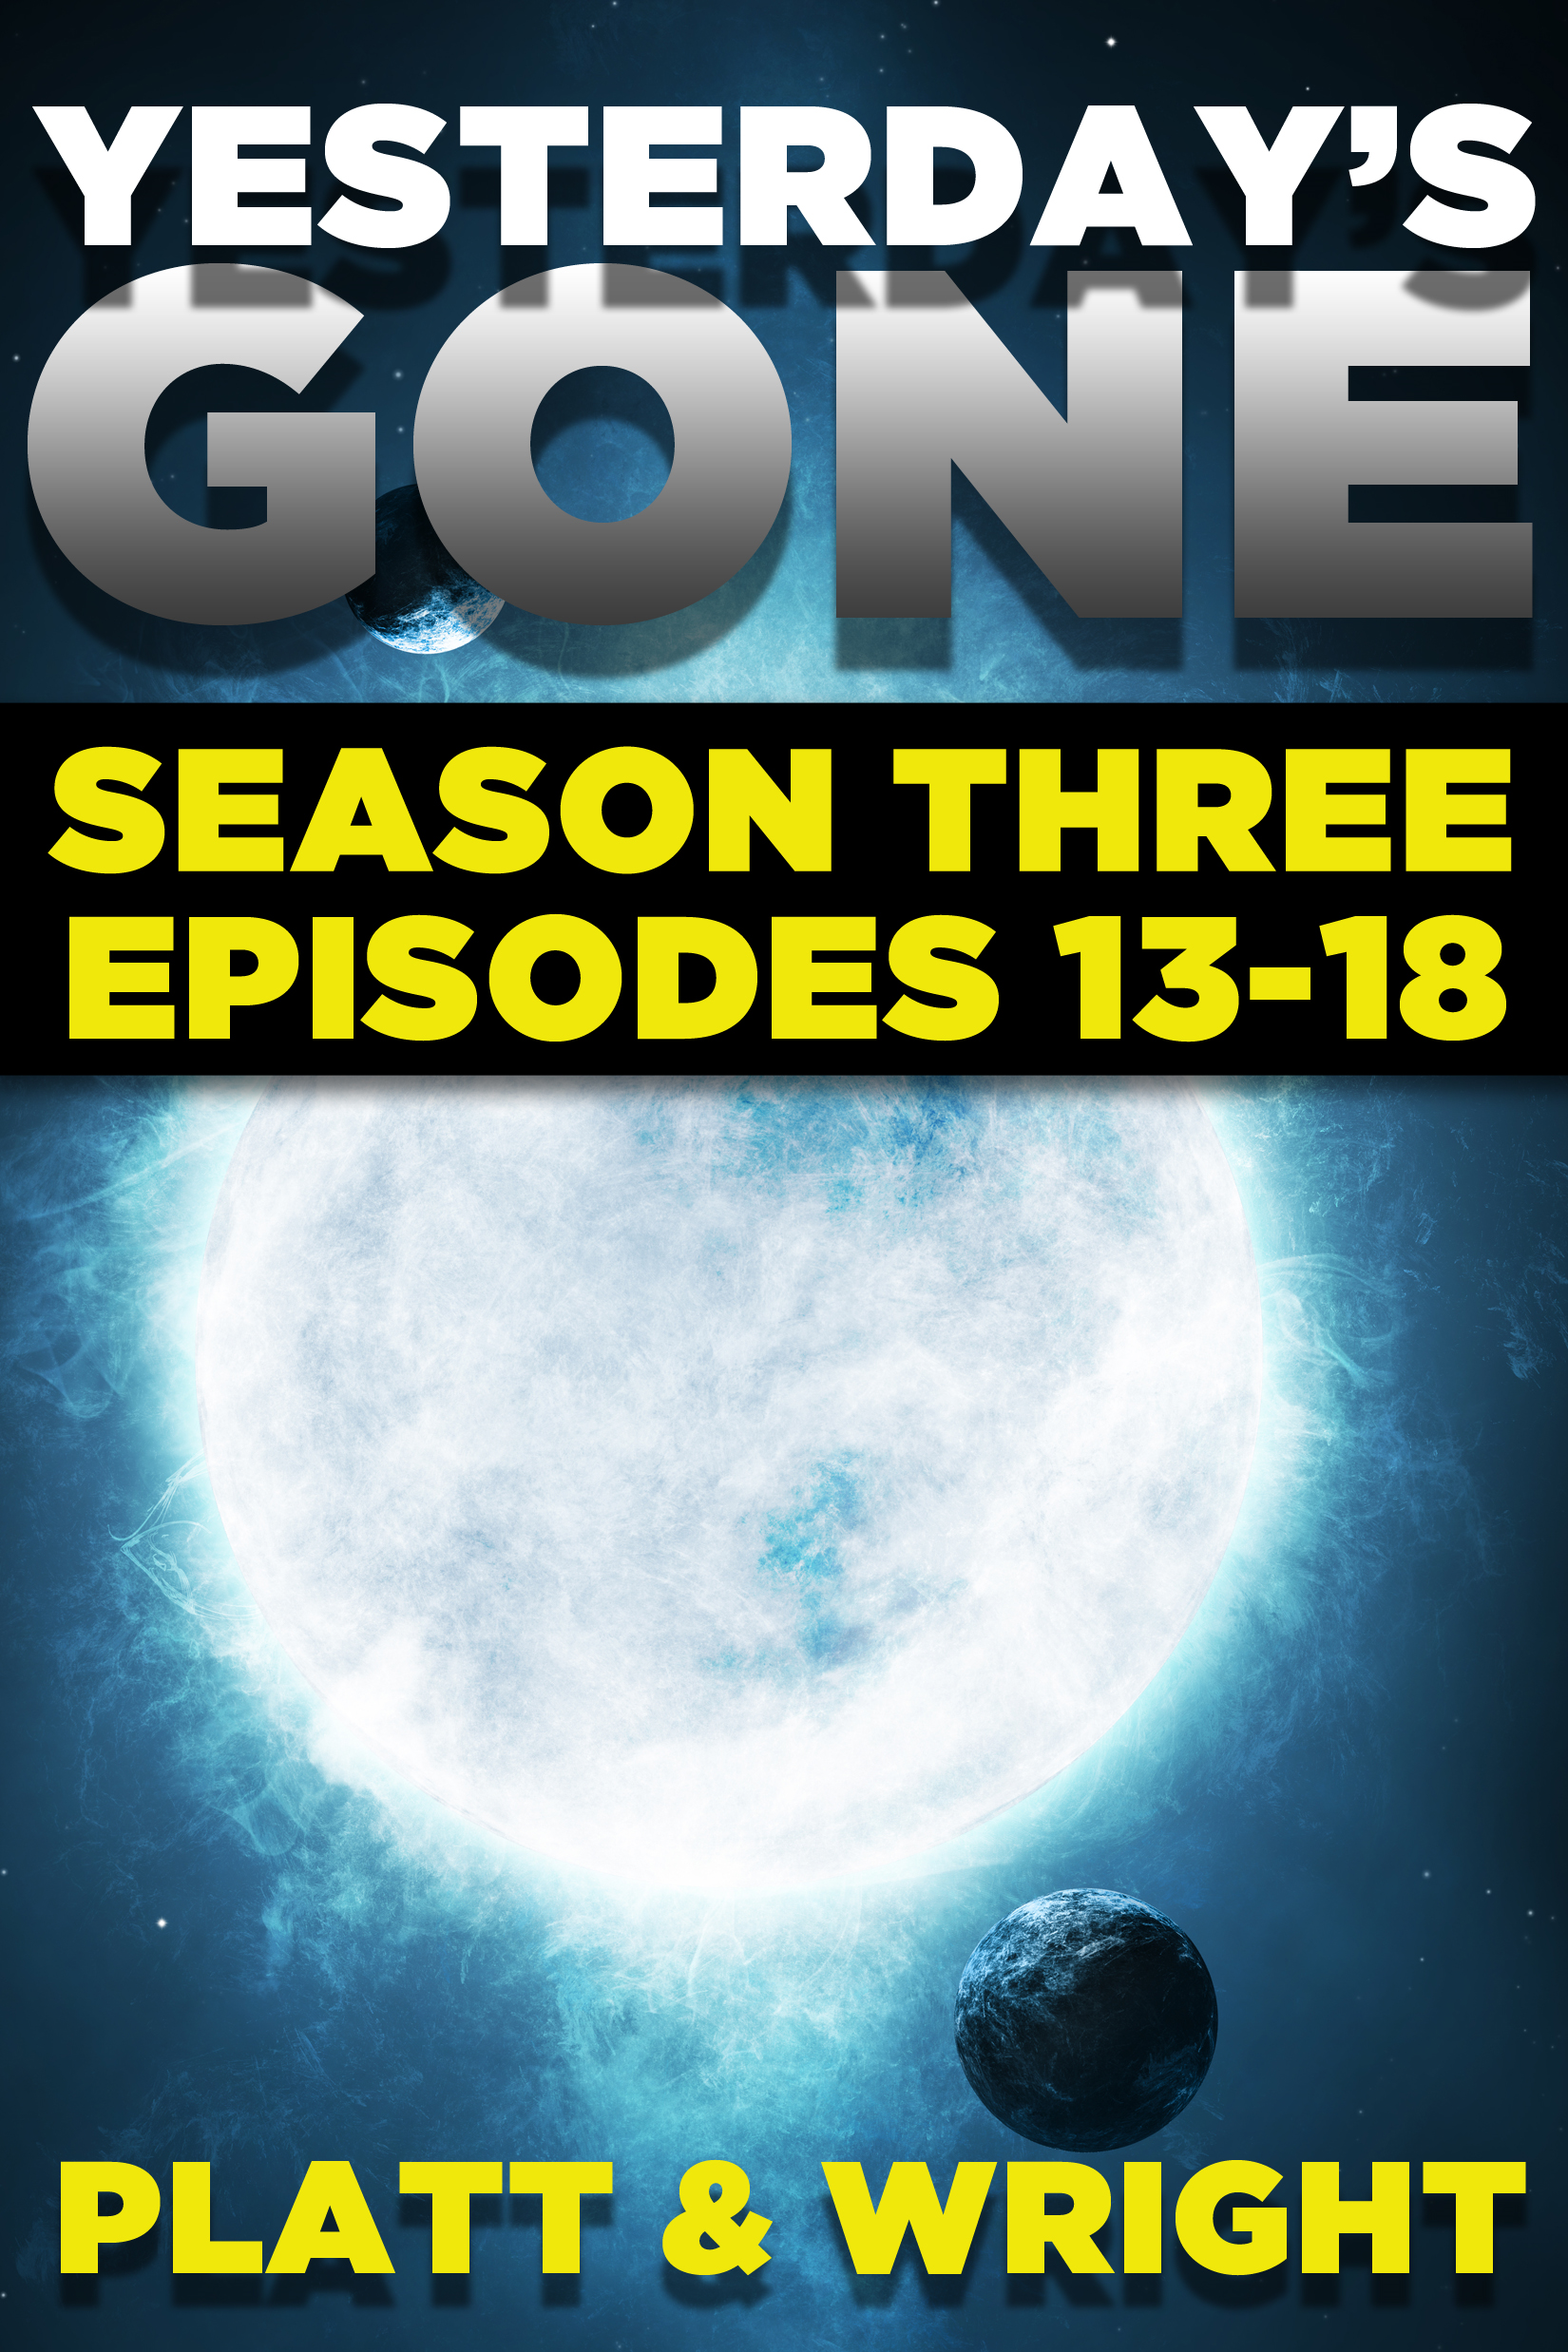 Yesterday's Gone: Season Three (Episodes 13-18)